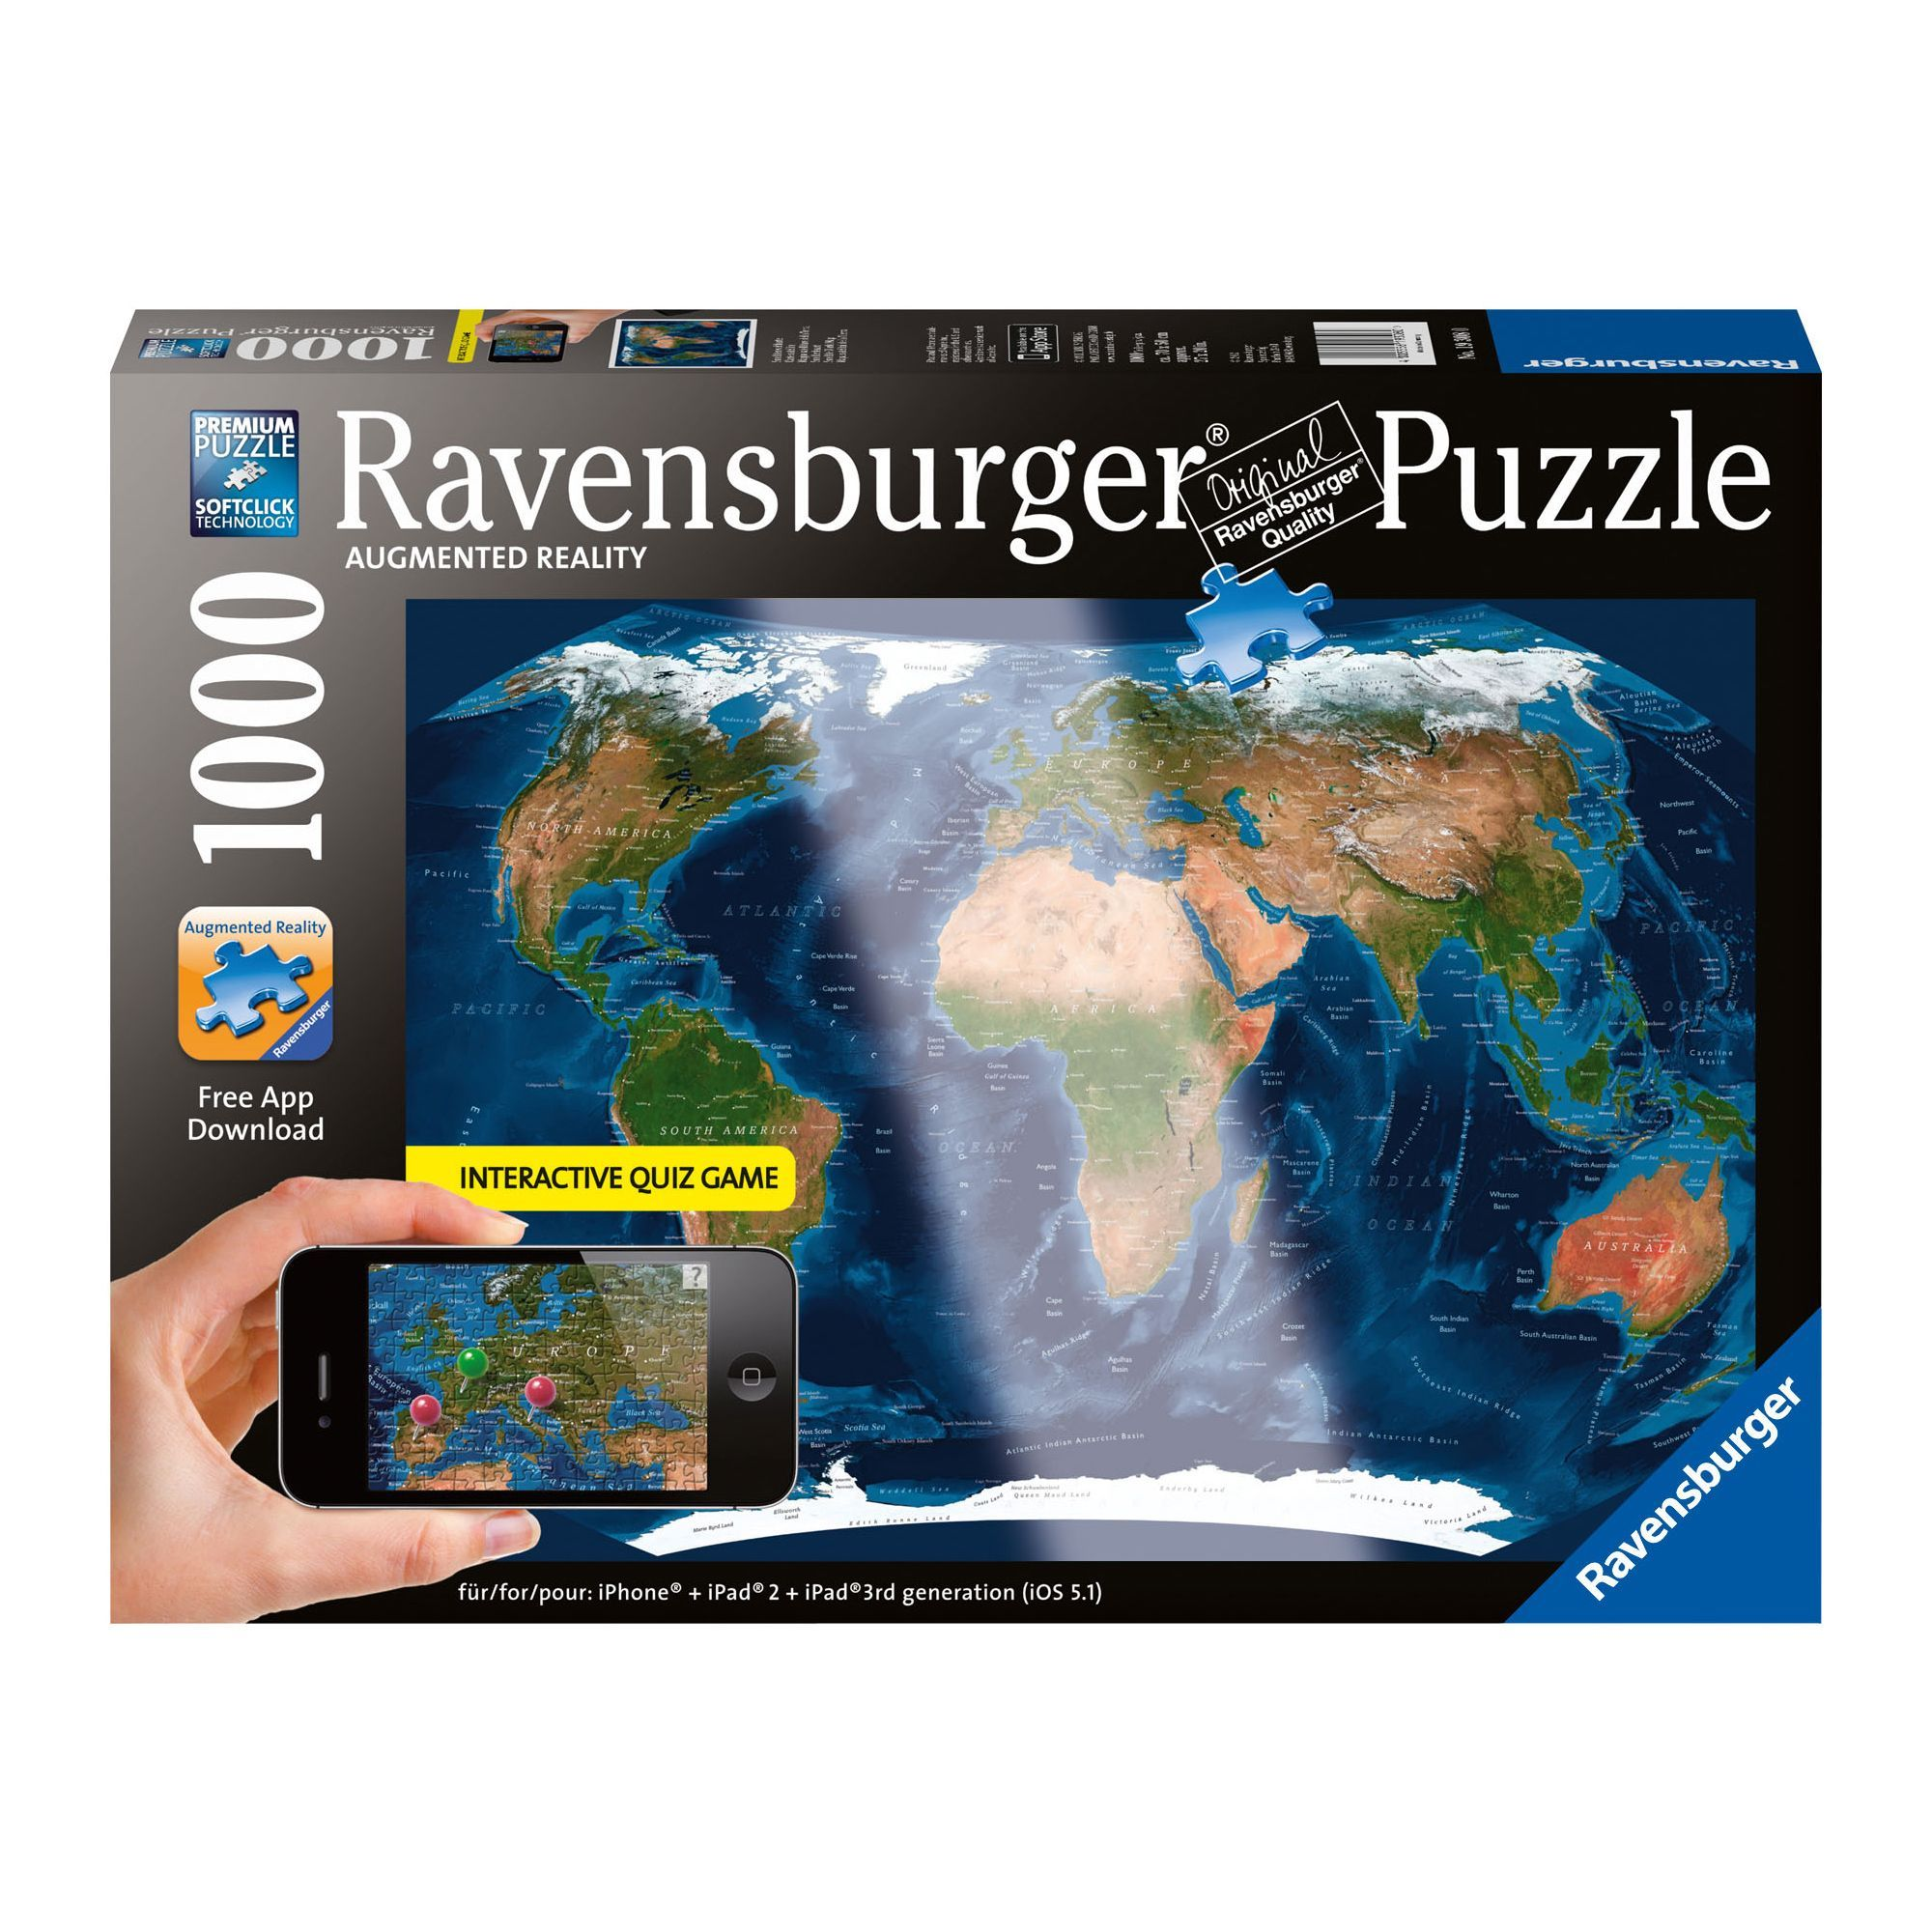 Ravensburger augmented reality satellite world map 1000 piece jigsaw ravensburger augmented reality satellite world map 1000 piece jigsaw puzzle gumiabroncs Image collections